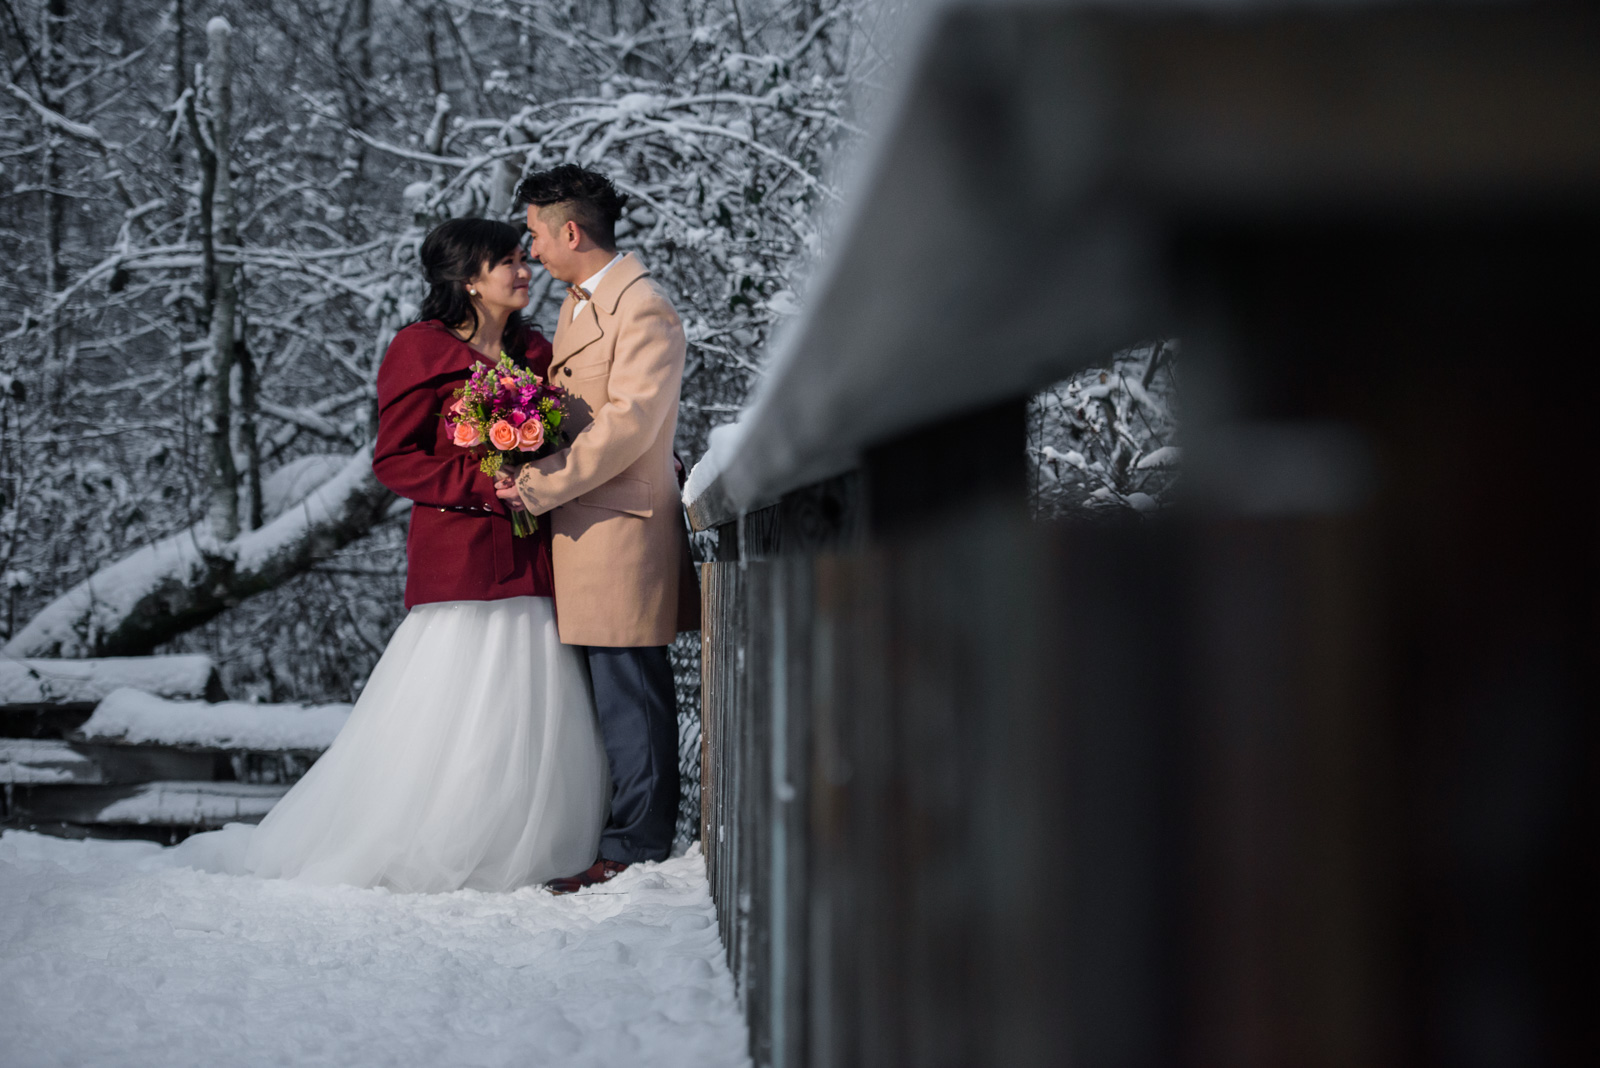 snowy wedding portrait on a bridge in richmond nature park - victoria wedding photographer